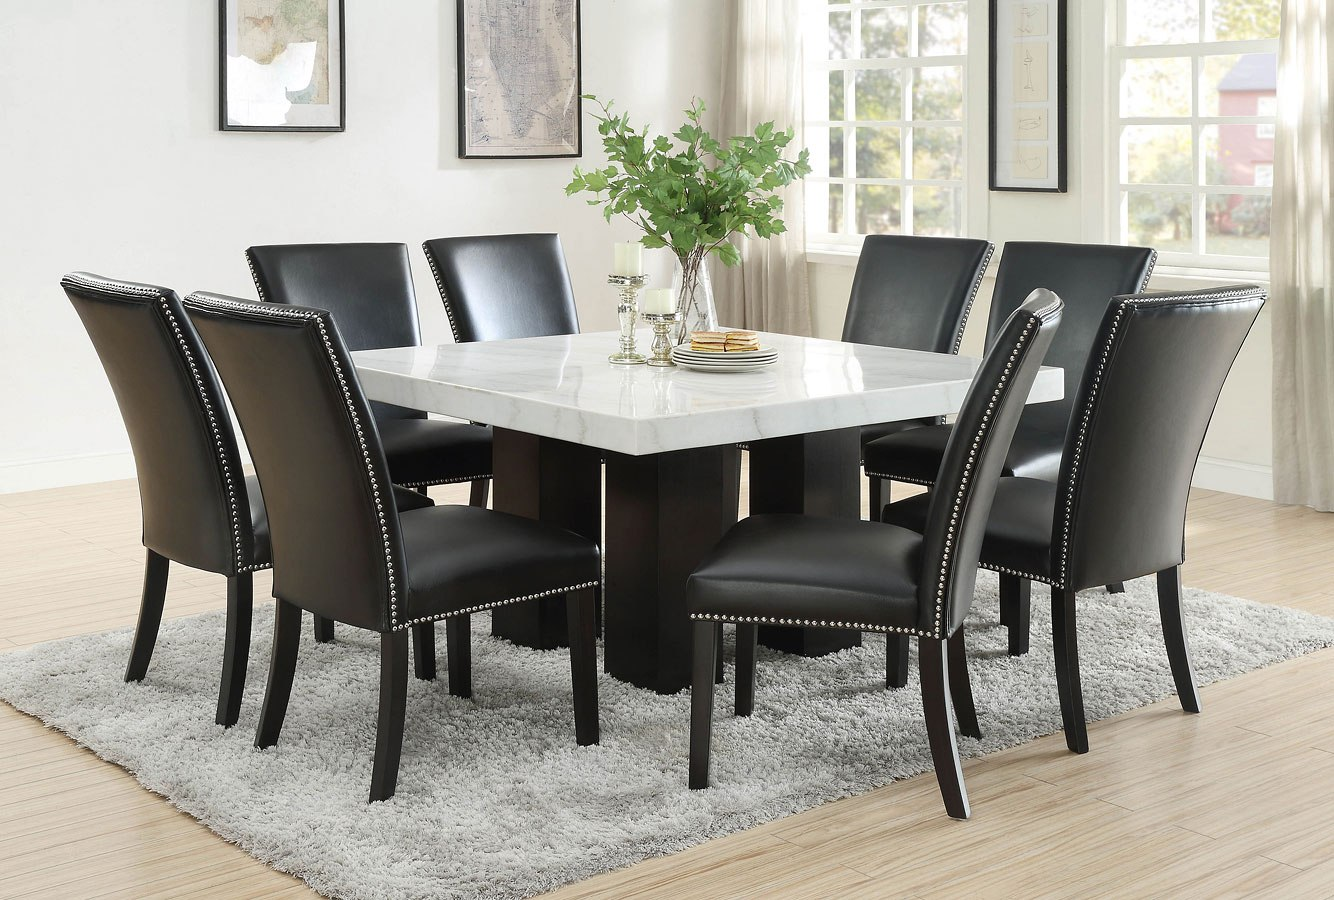 Camila Square Dining Room Set W Black Pu Chairs Steve Silver Furniture Furniture Cart